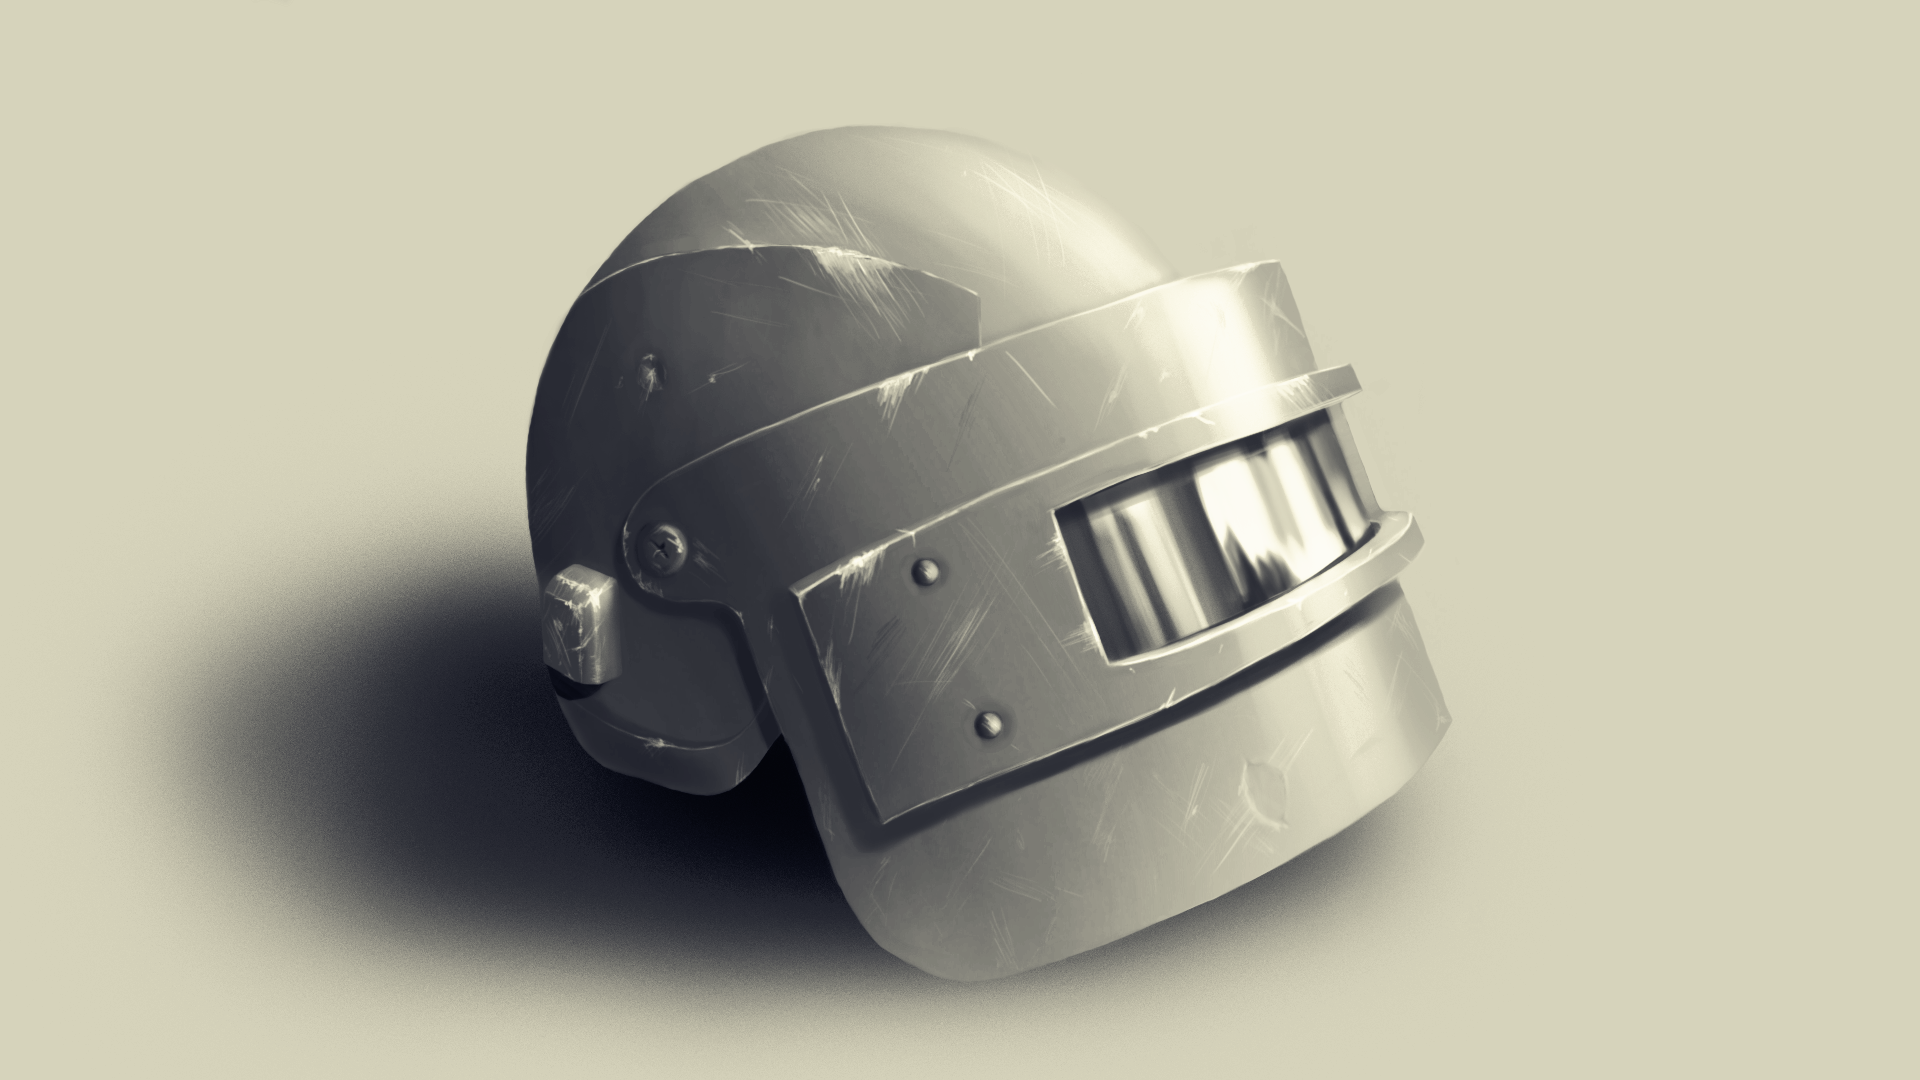 Pubg Lvl 3 Helmet Digital 1920x1080 Art Pinterest Helmet